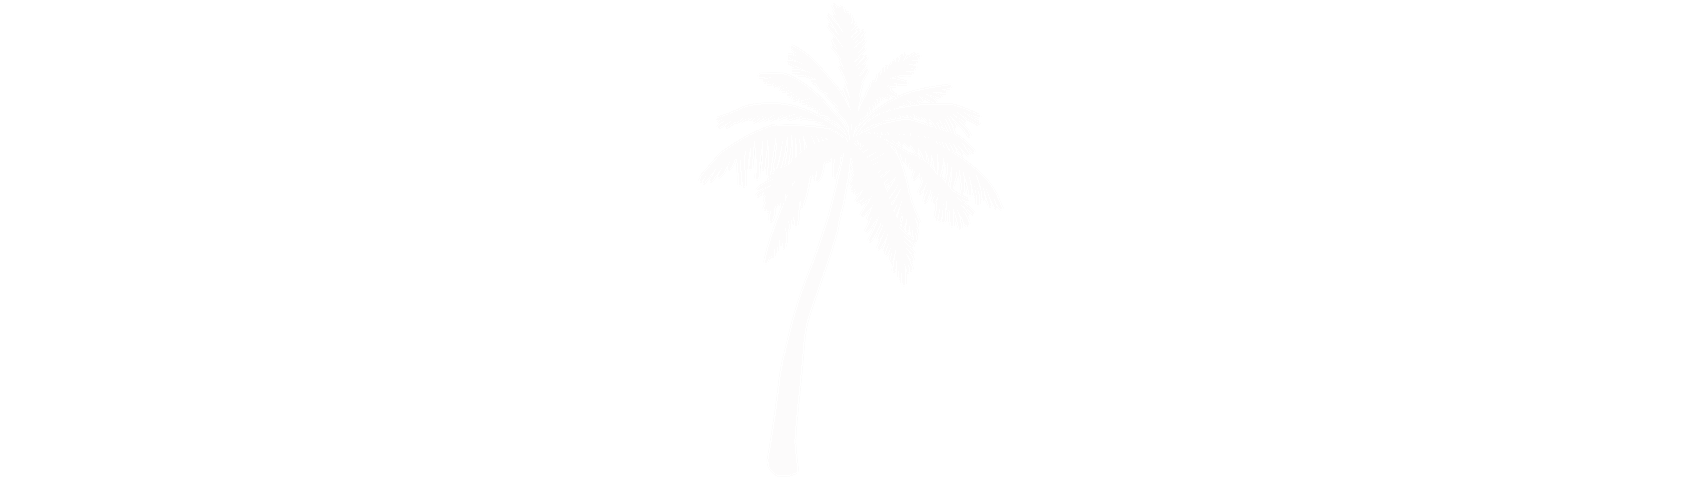 15d065929e68f5cb95ebac9264983590-tall-palm-tree-silhouette-palm-by-vexels copy.png